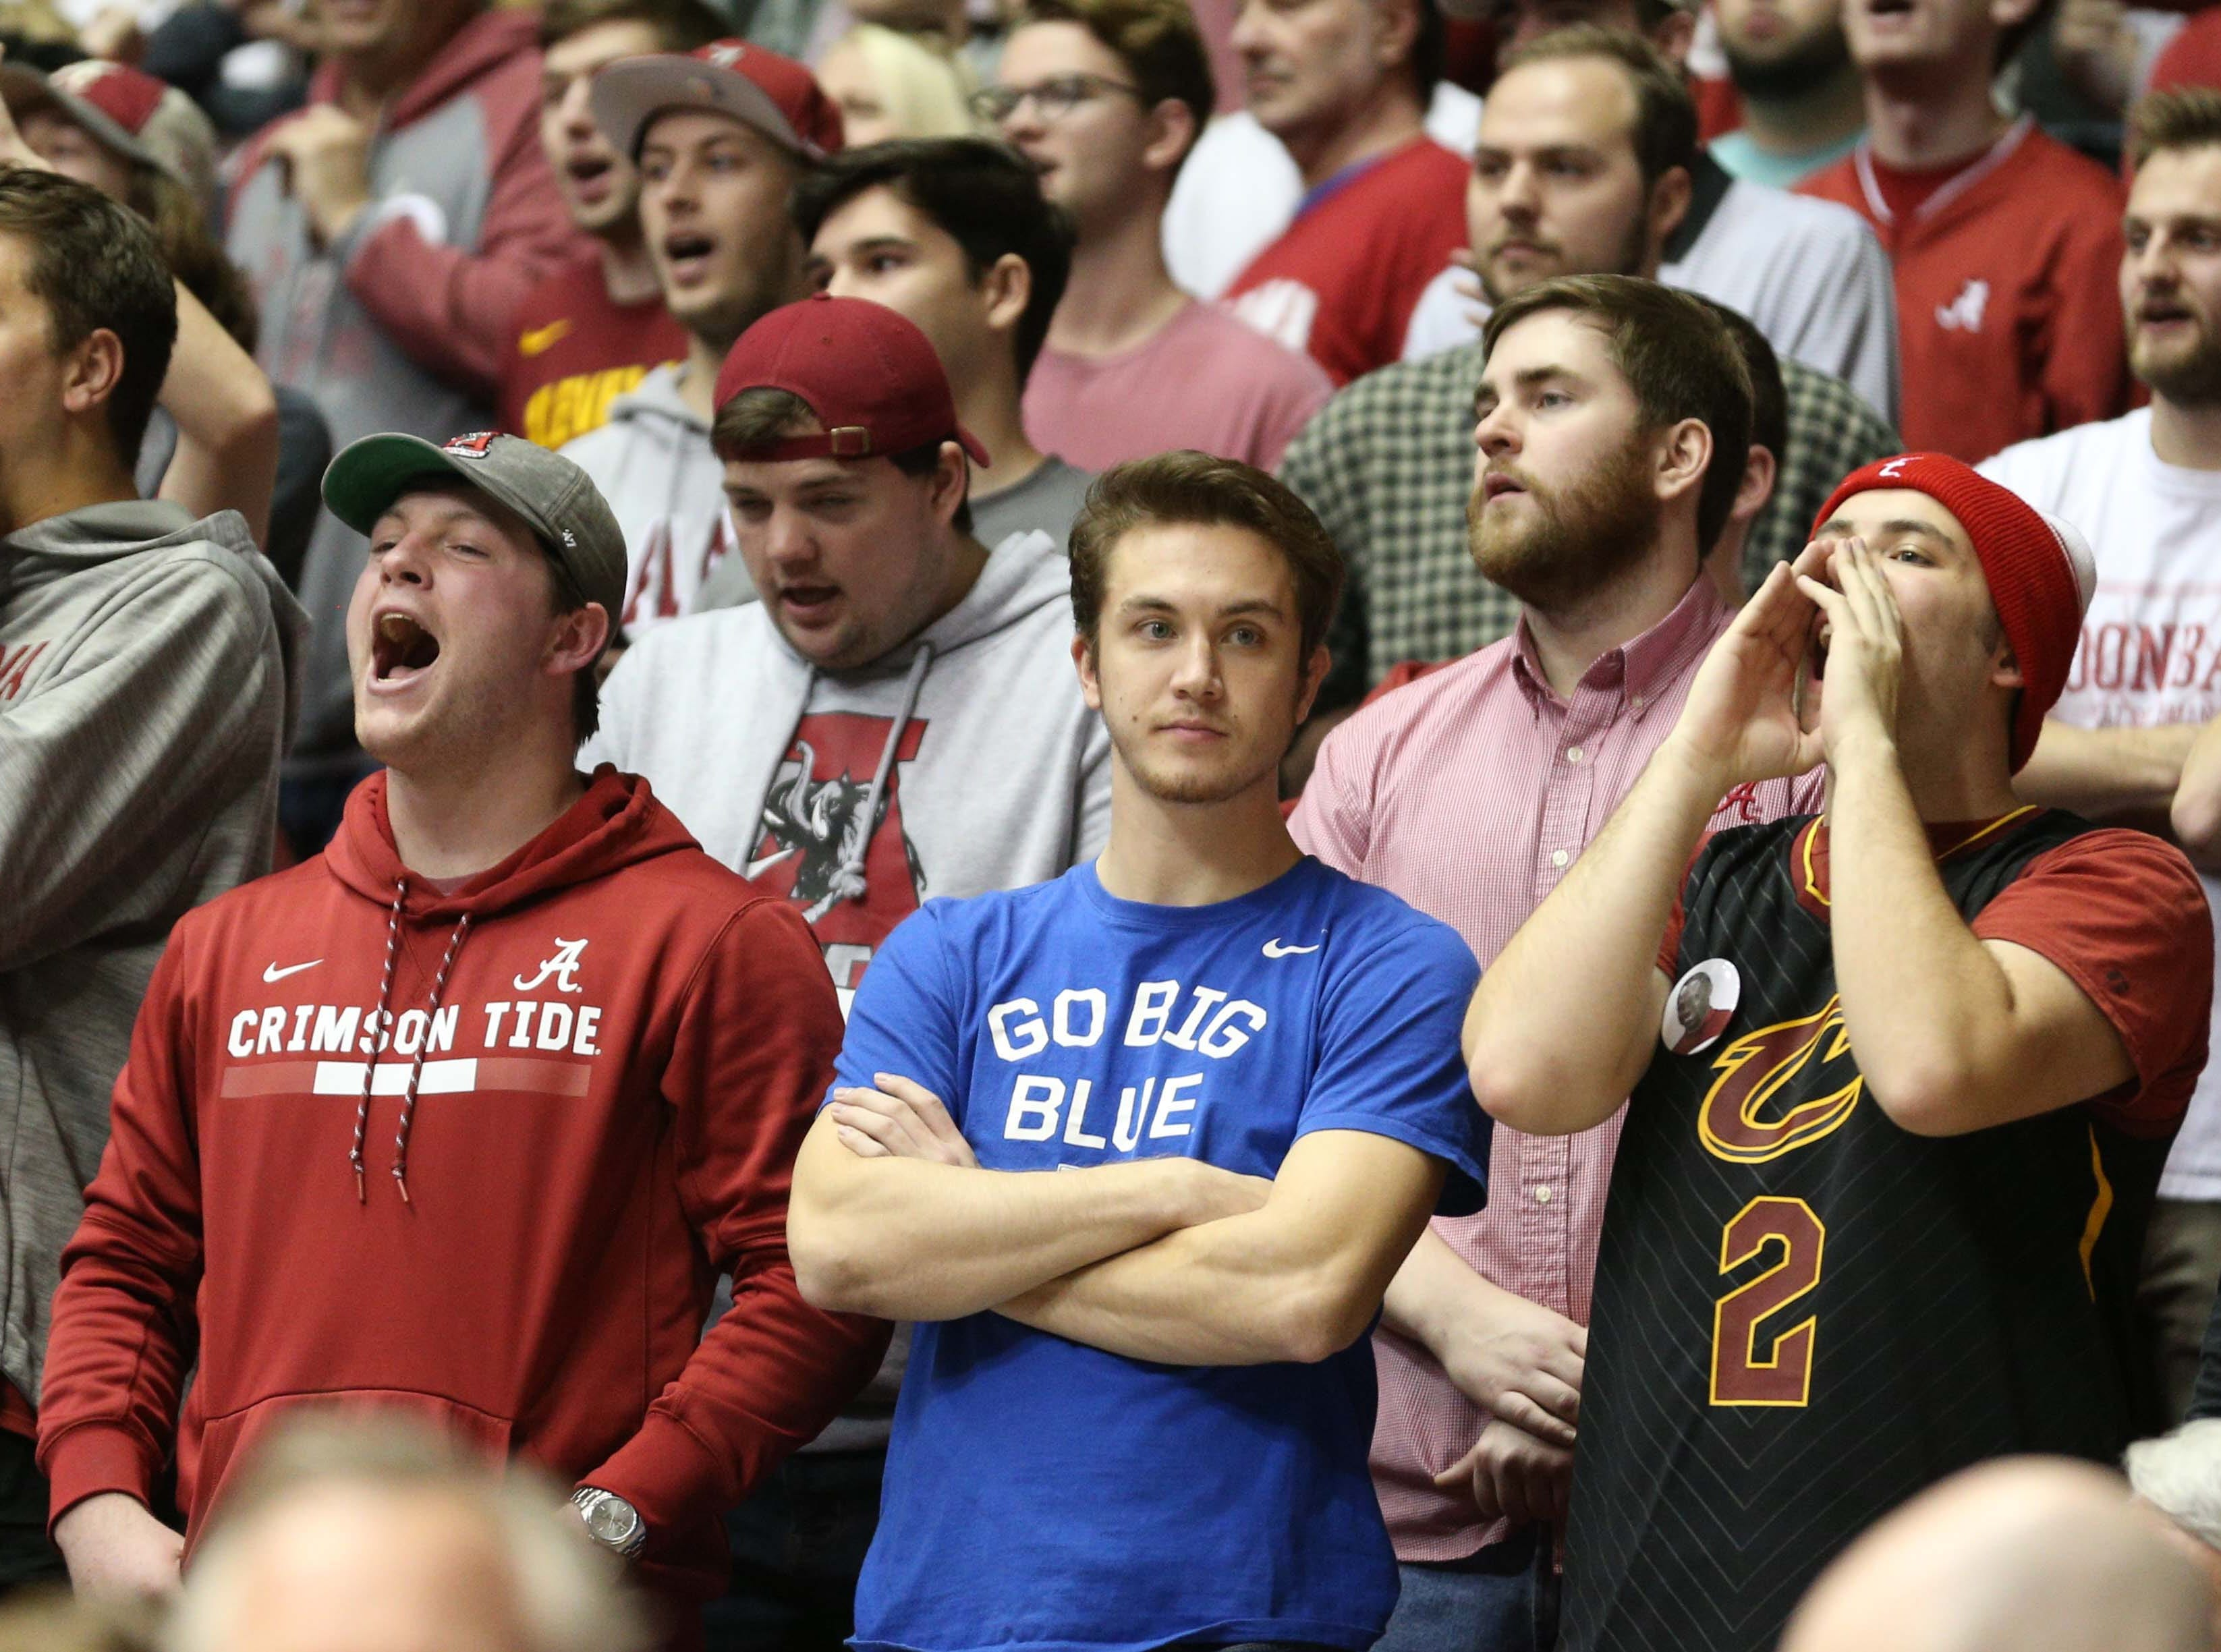 Jan 5, 2019; Tuscaloosa, AL, USA; A Lone Kentucky Wildcats fan shows his reaction to his teams play against the Alabama Crimson Tide during the second half at Coleman Coliseum. Mandatory Credit: Marvin Gentry-USA TODAY Sports